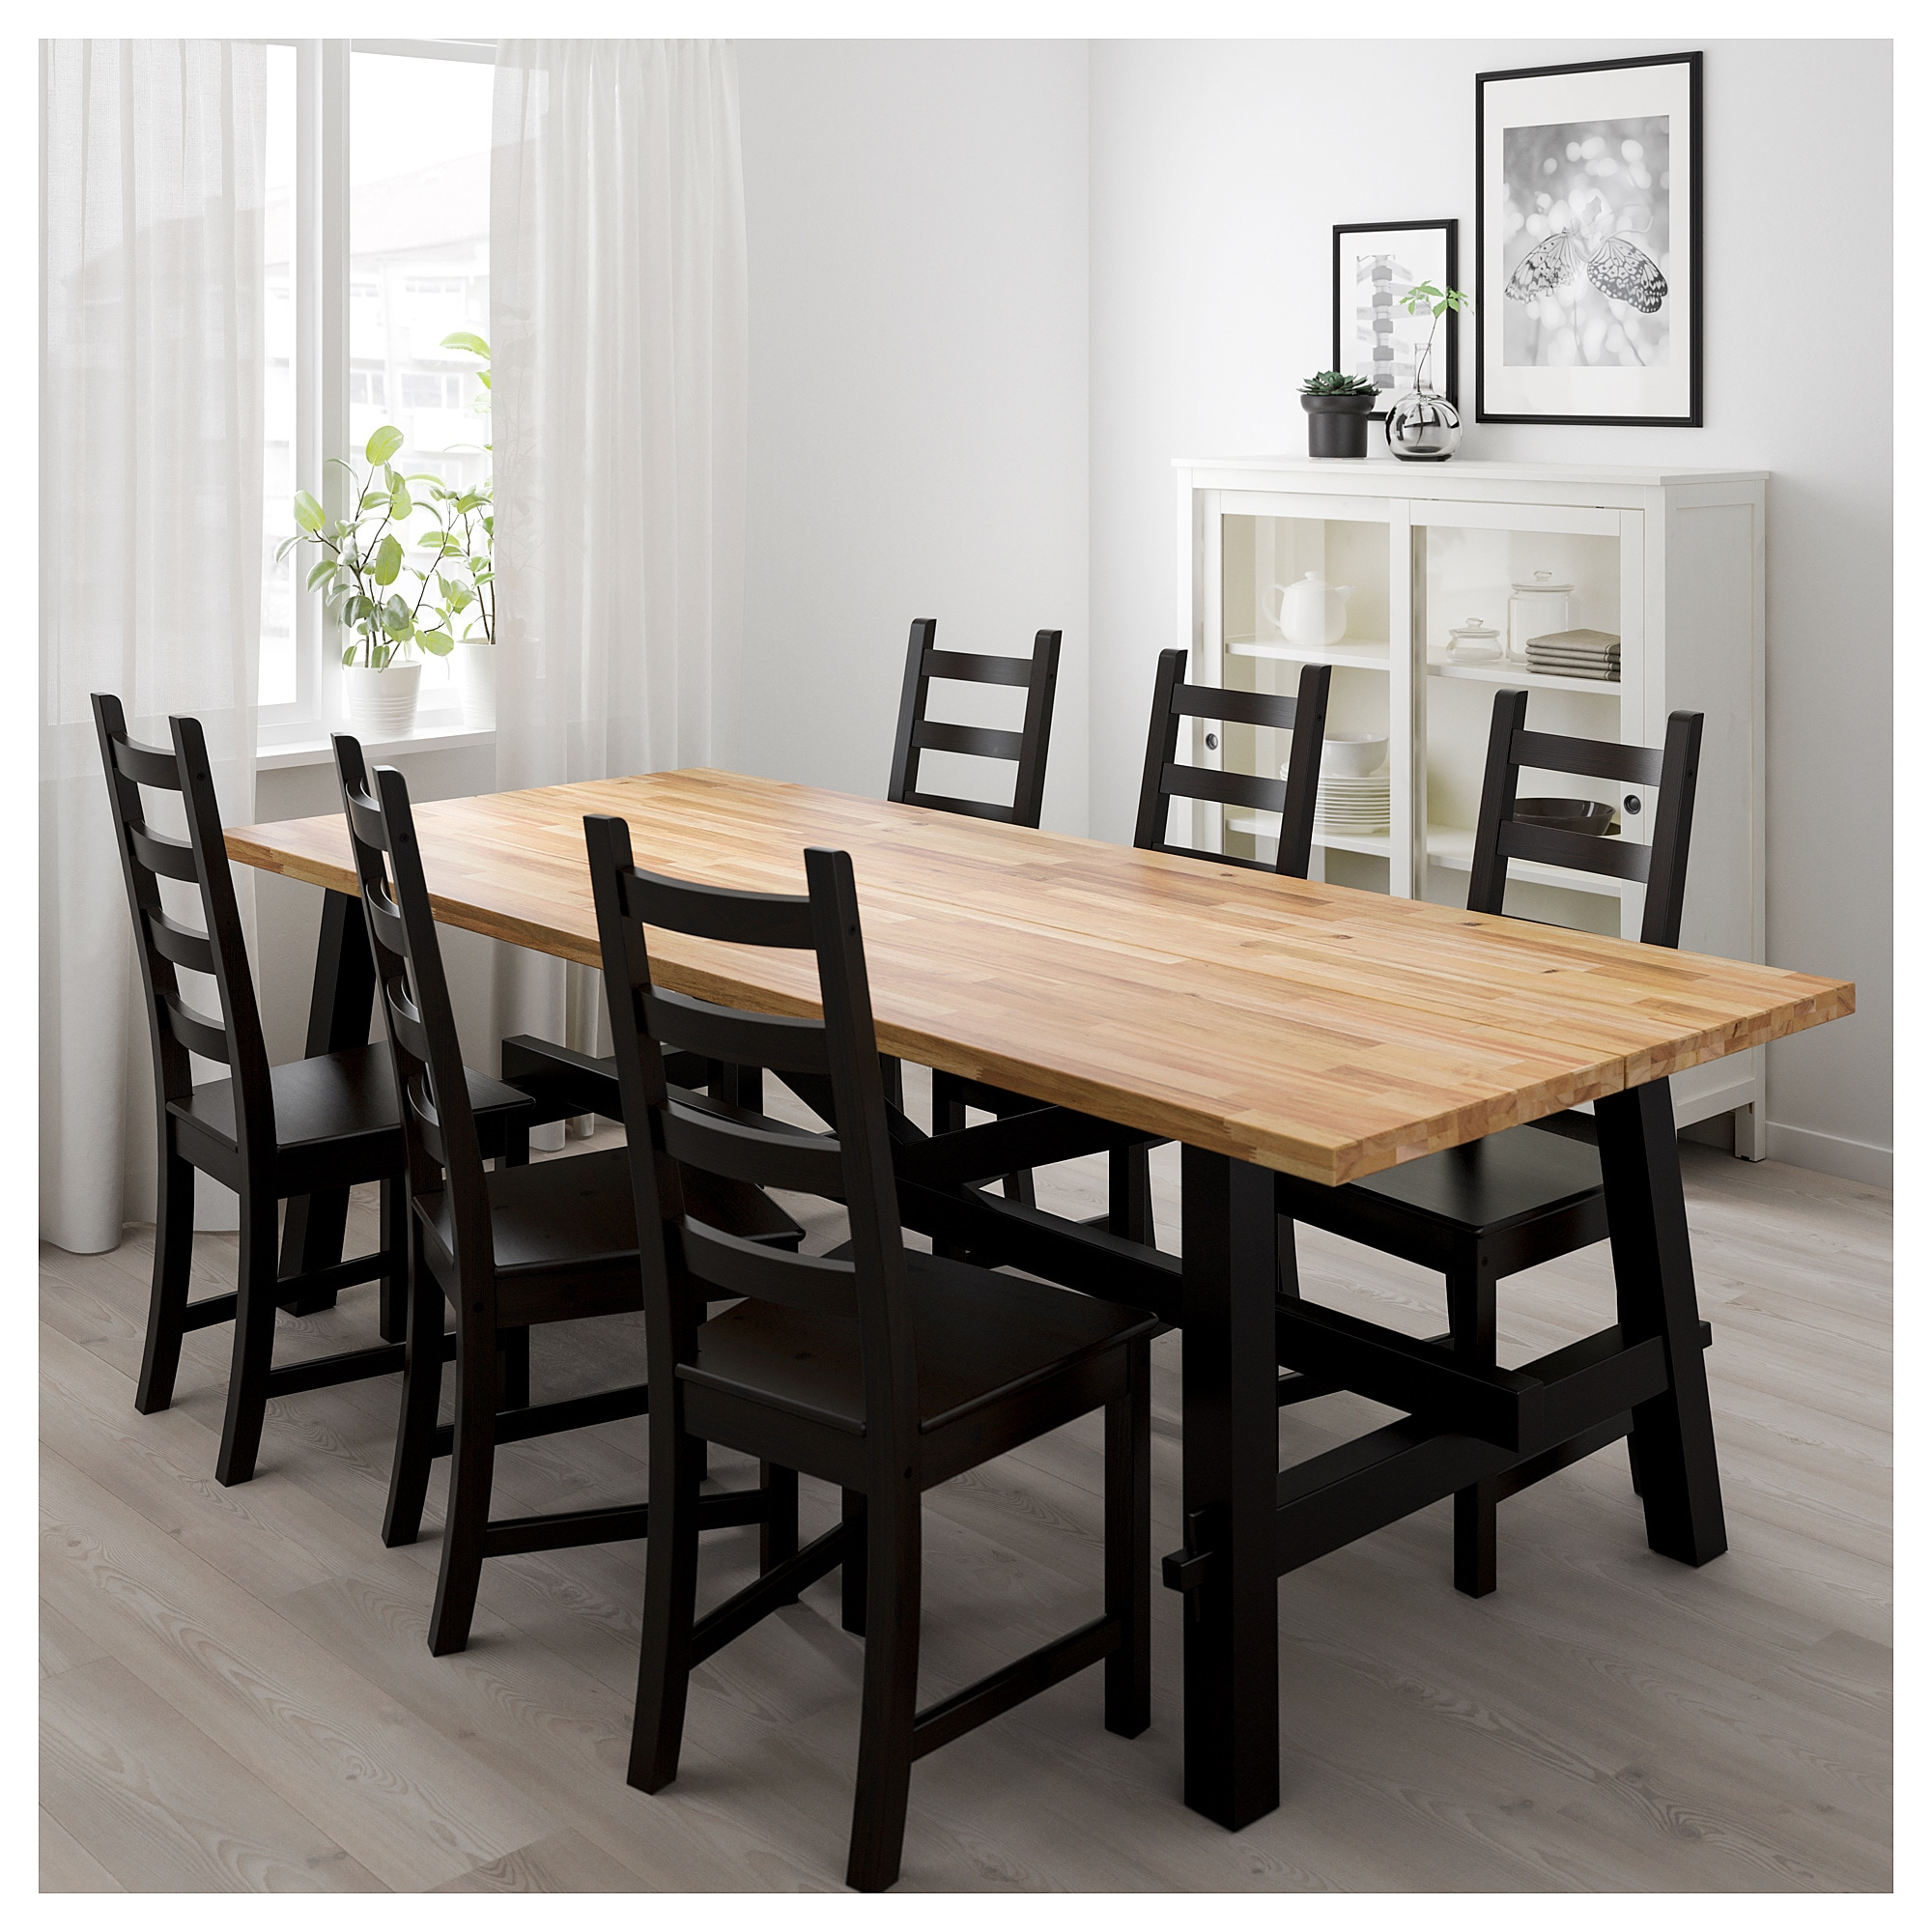 Skogsta kaustby table and 6 chairs ikea